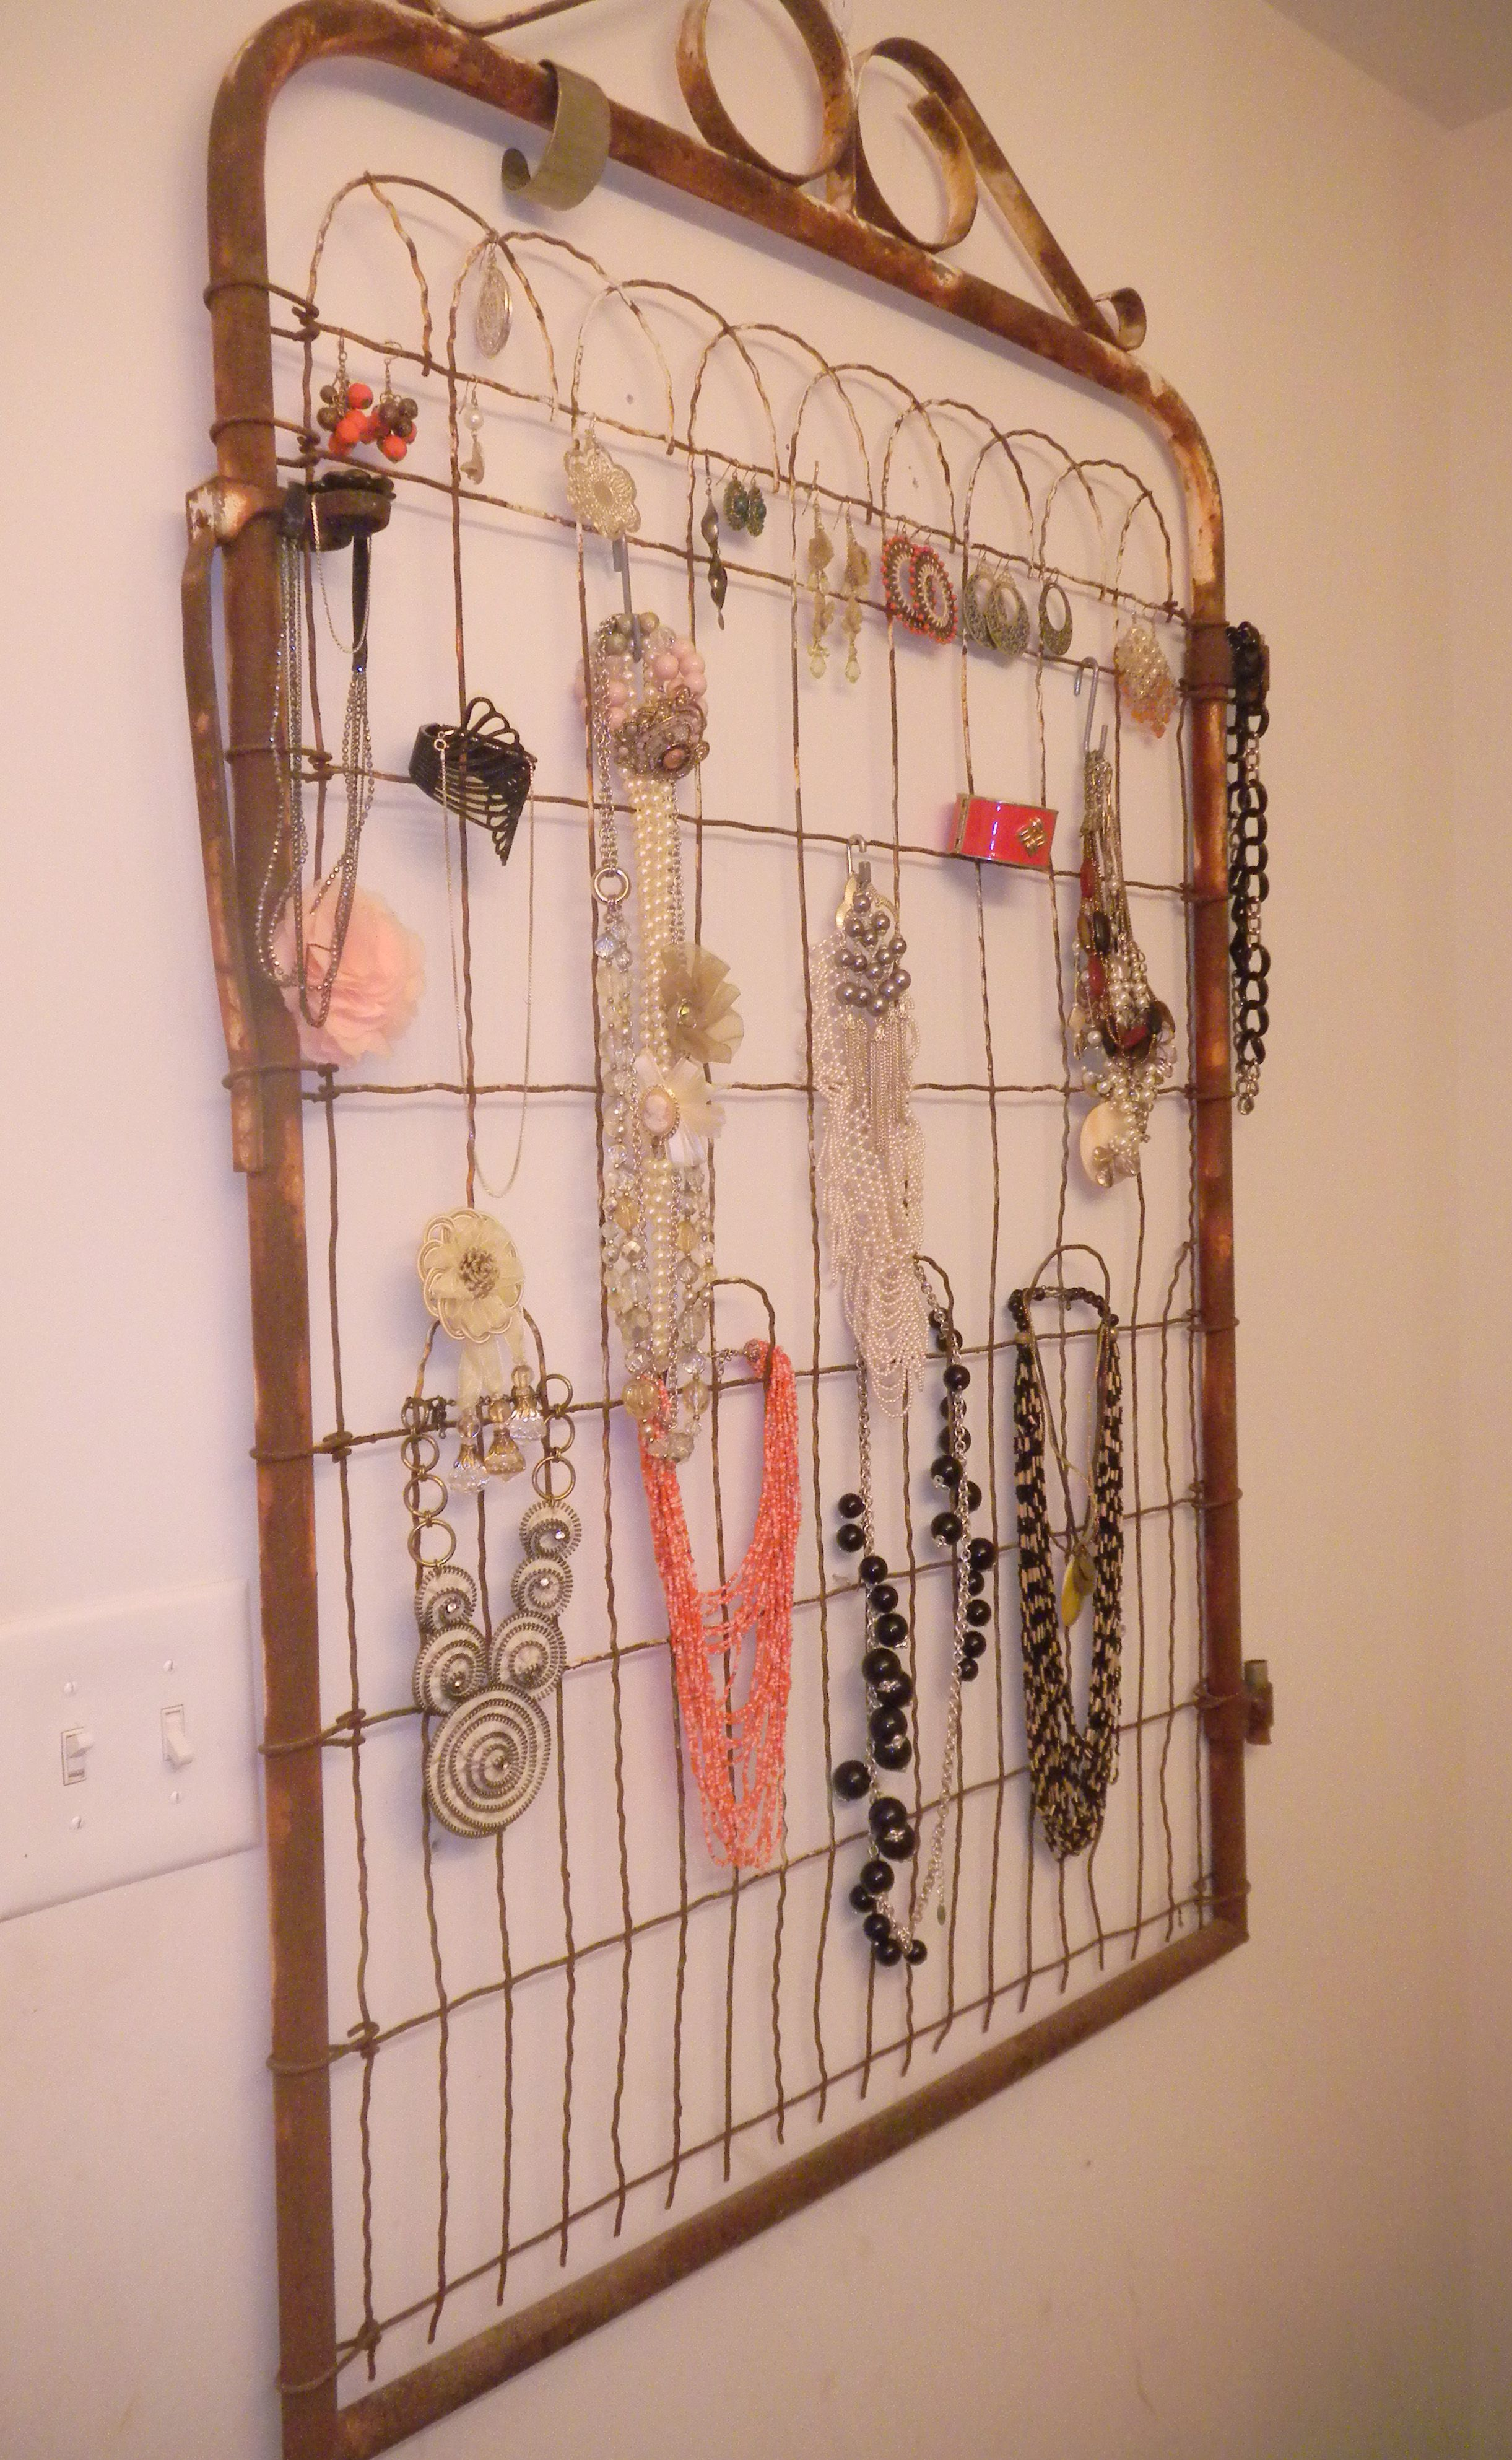 Jenni K does this for hairbows Creative jewelry organizer